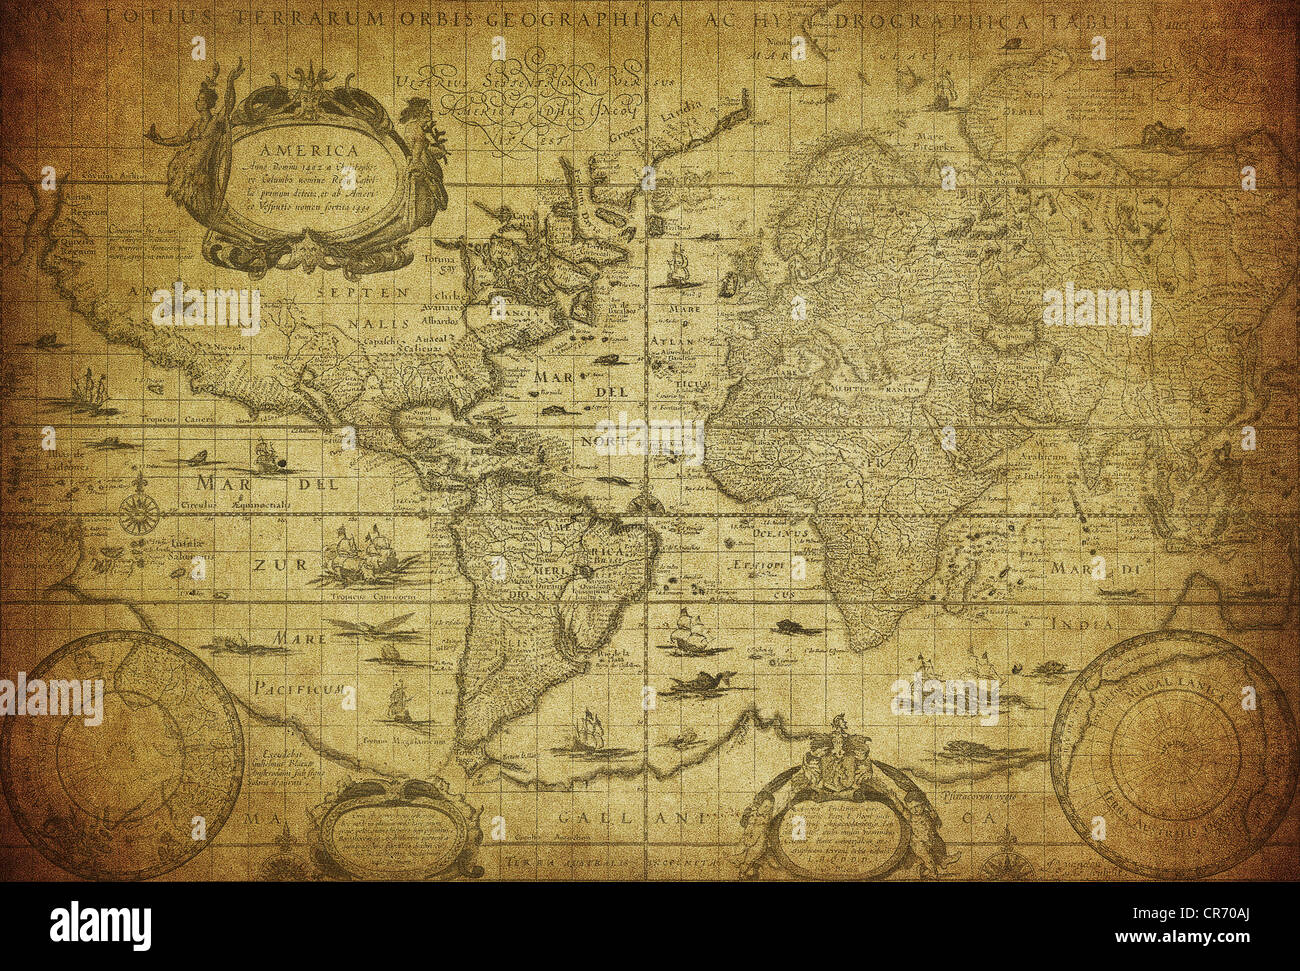 vintage map of the world 1635 - Stock Image